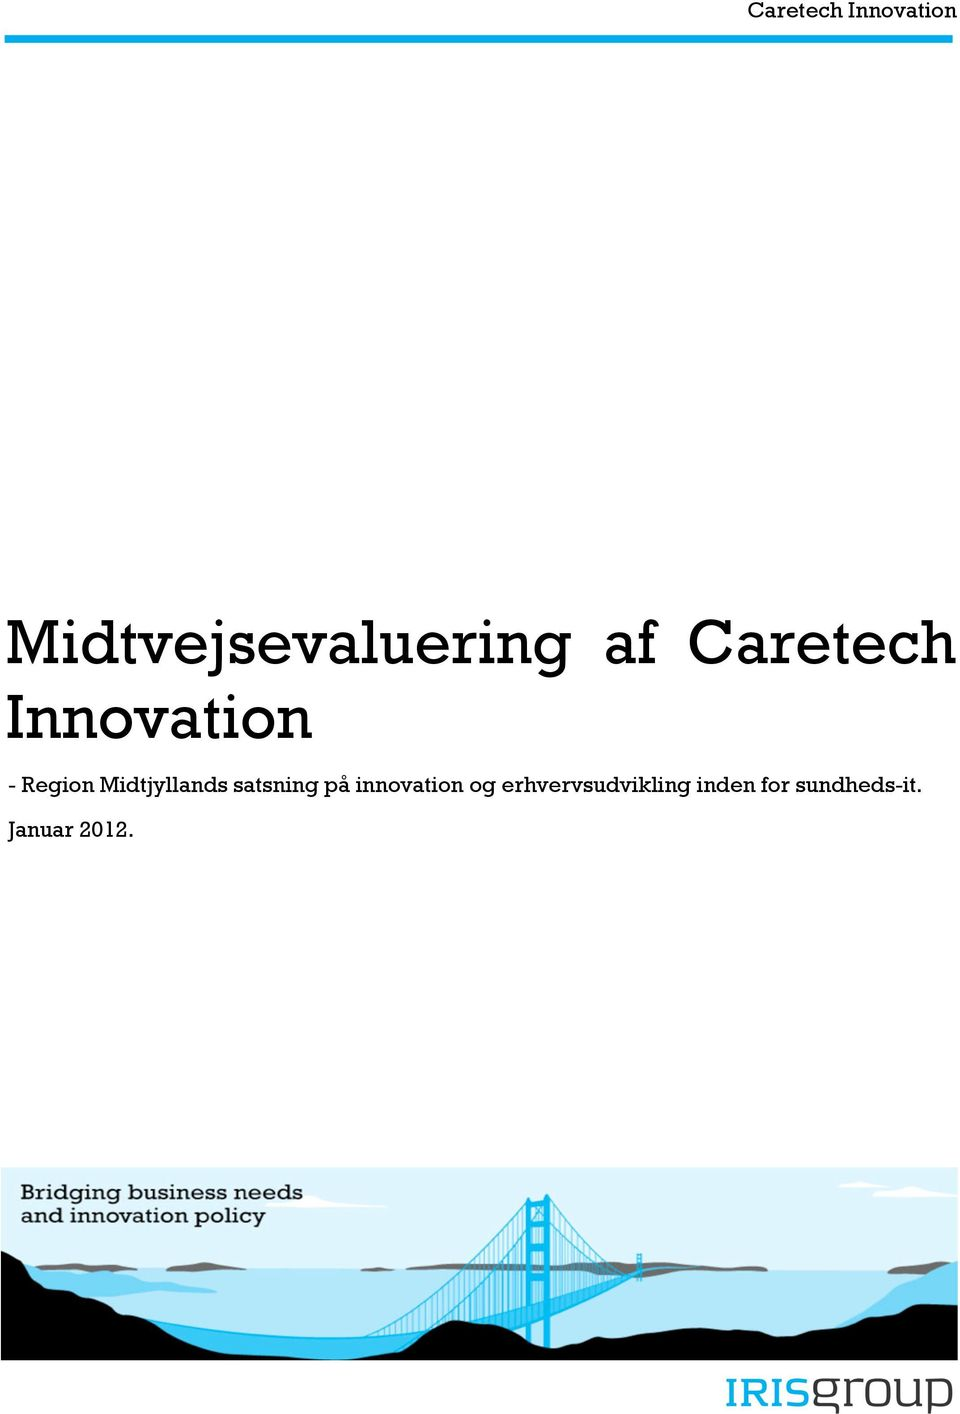 Midtjyllands satsning på innovation og